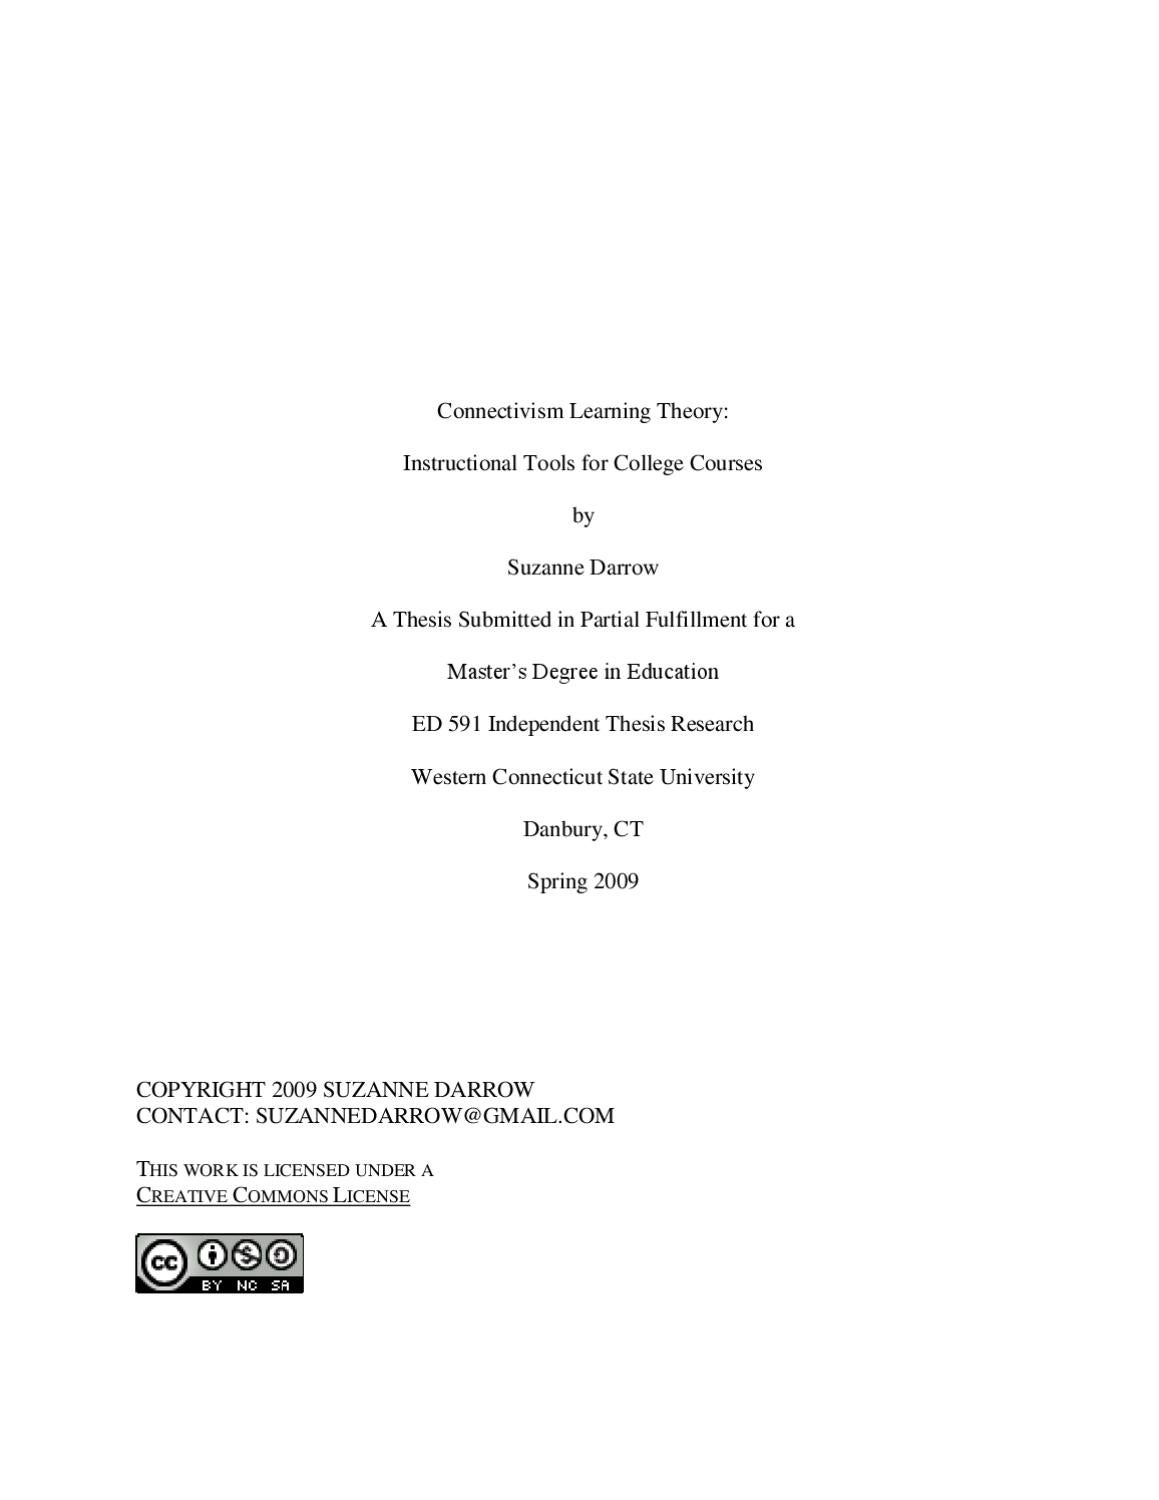 Connectivism Learning Theory Instructional Tools For College Courses